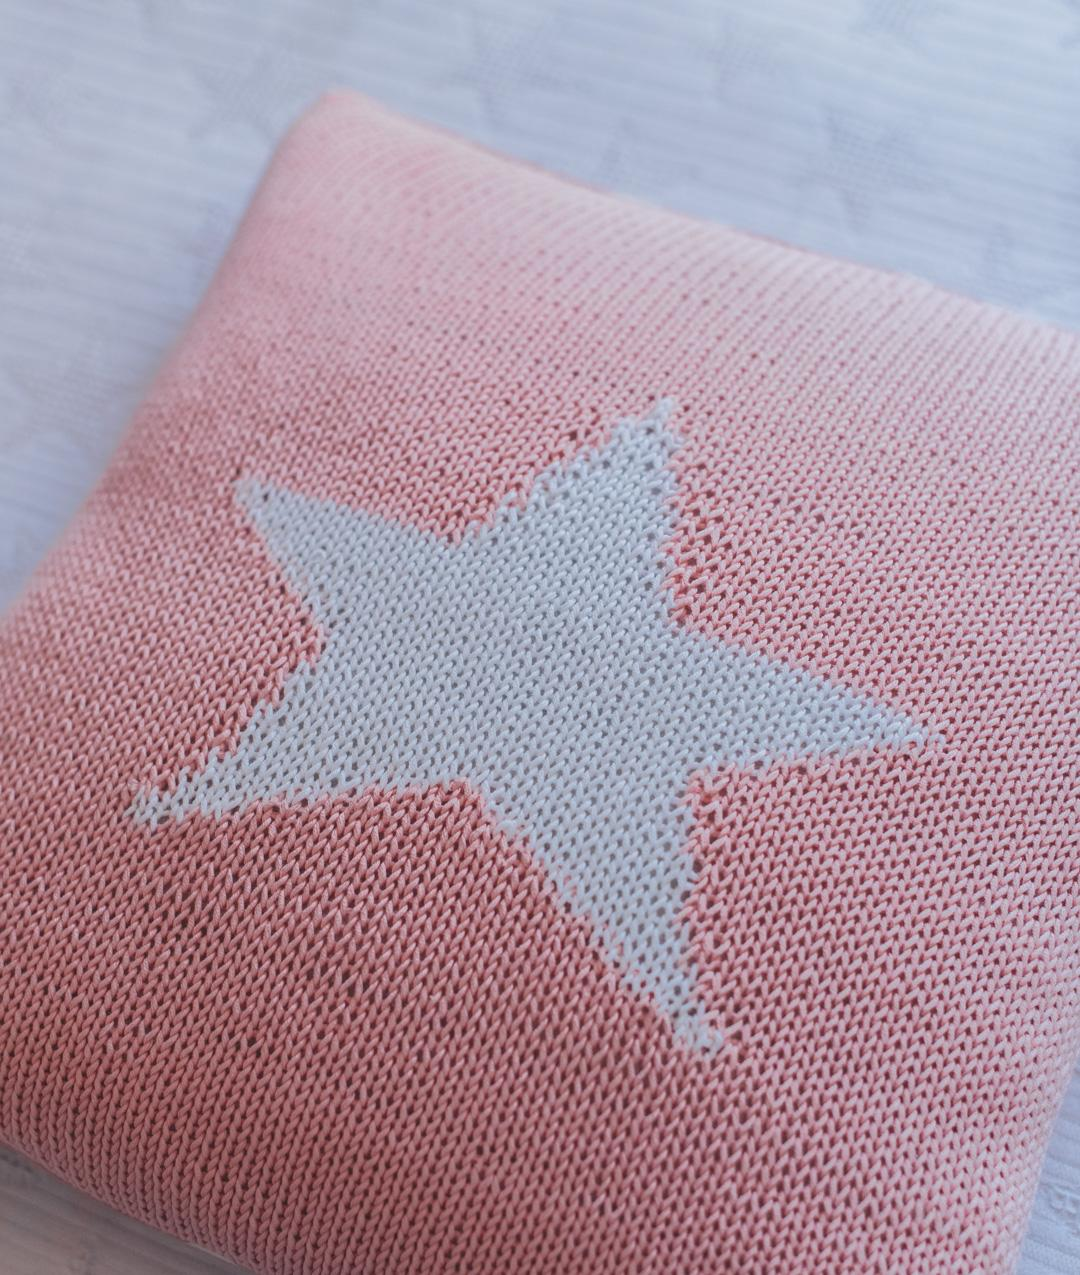 Collezione Home Decor Baby - CasaCollezione Home Decor Baby - Casa - MY LITTLE STAR CUSHION - 1